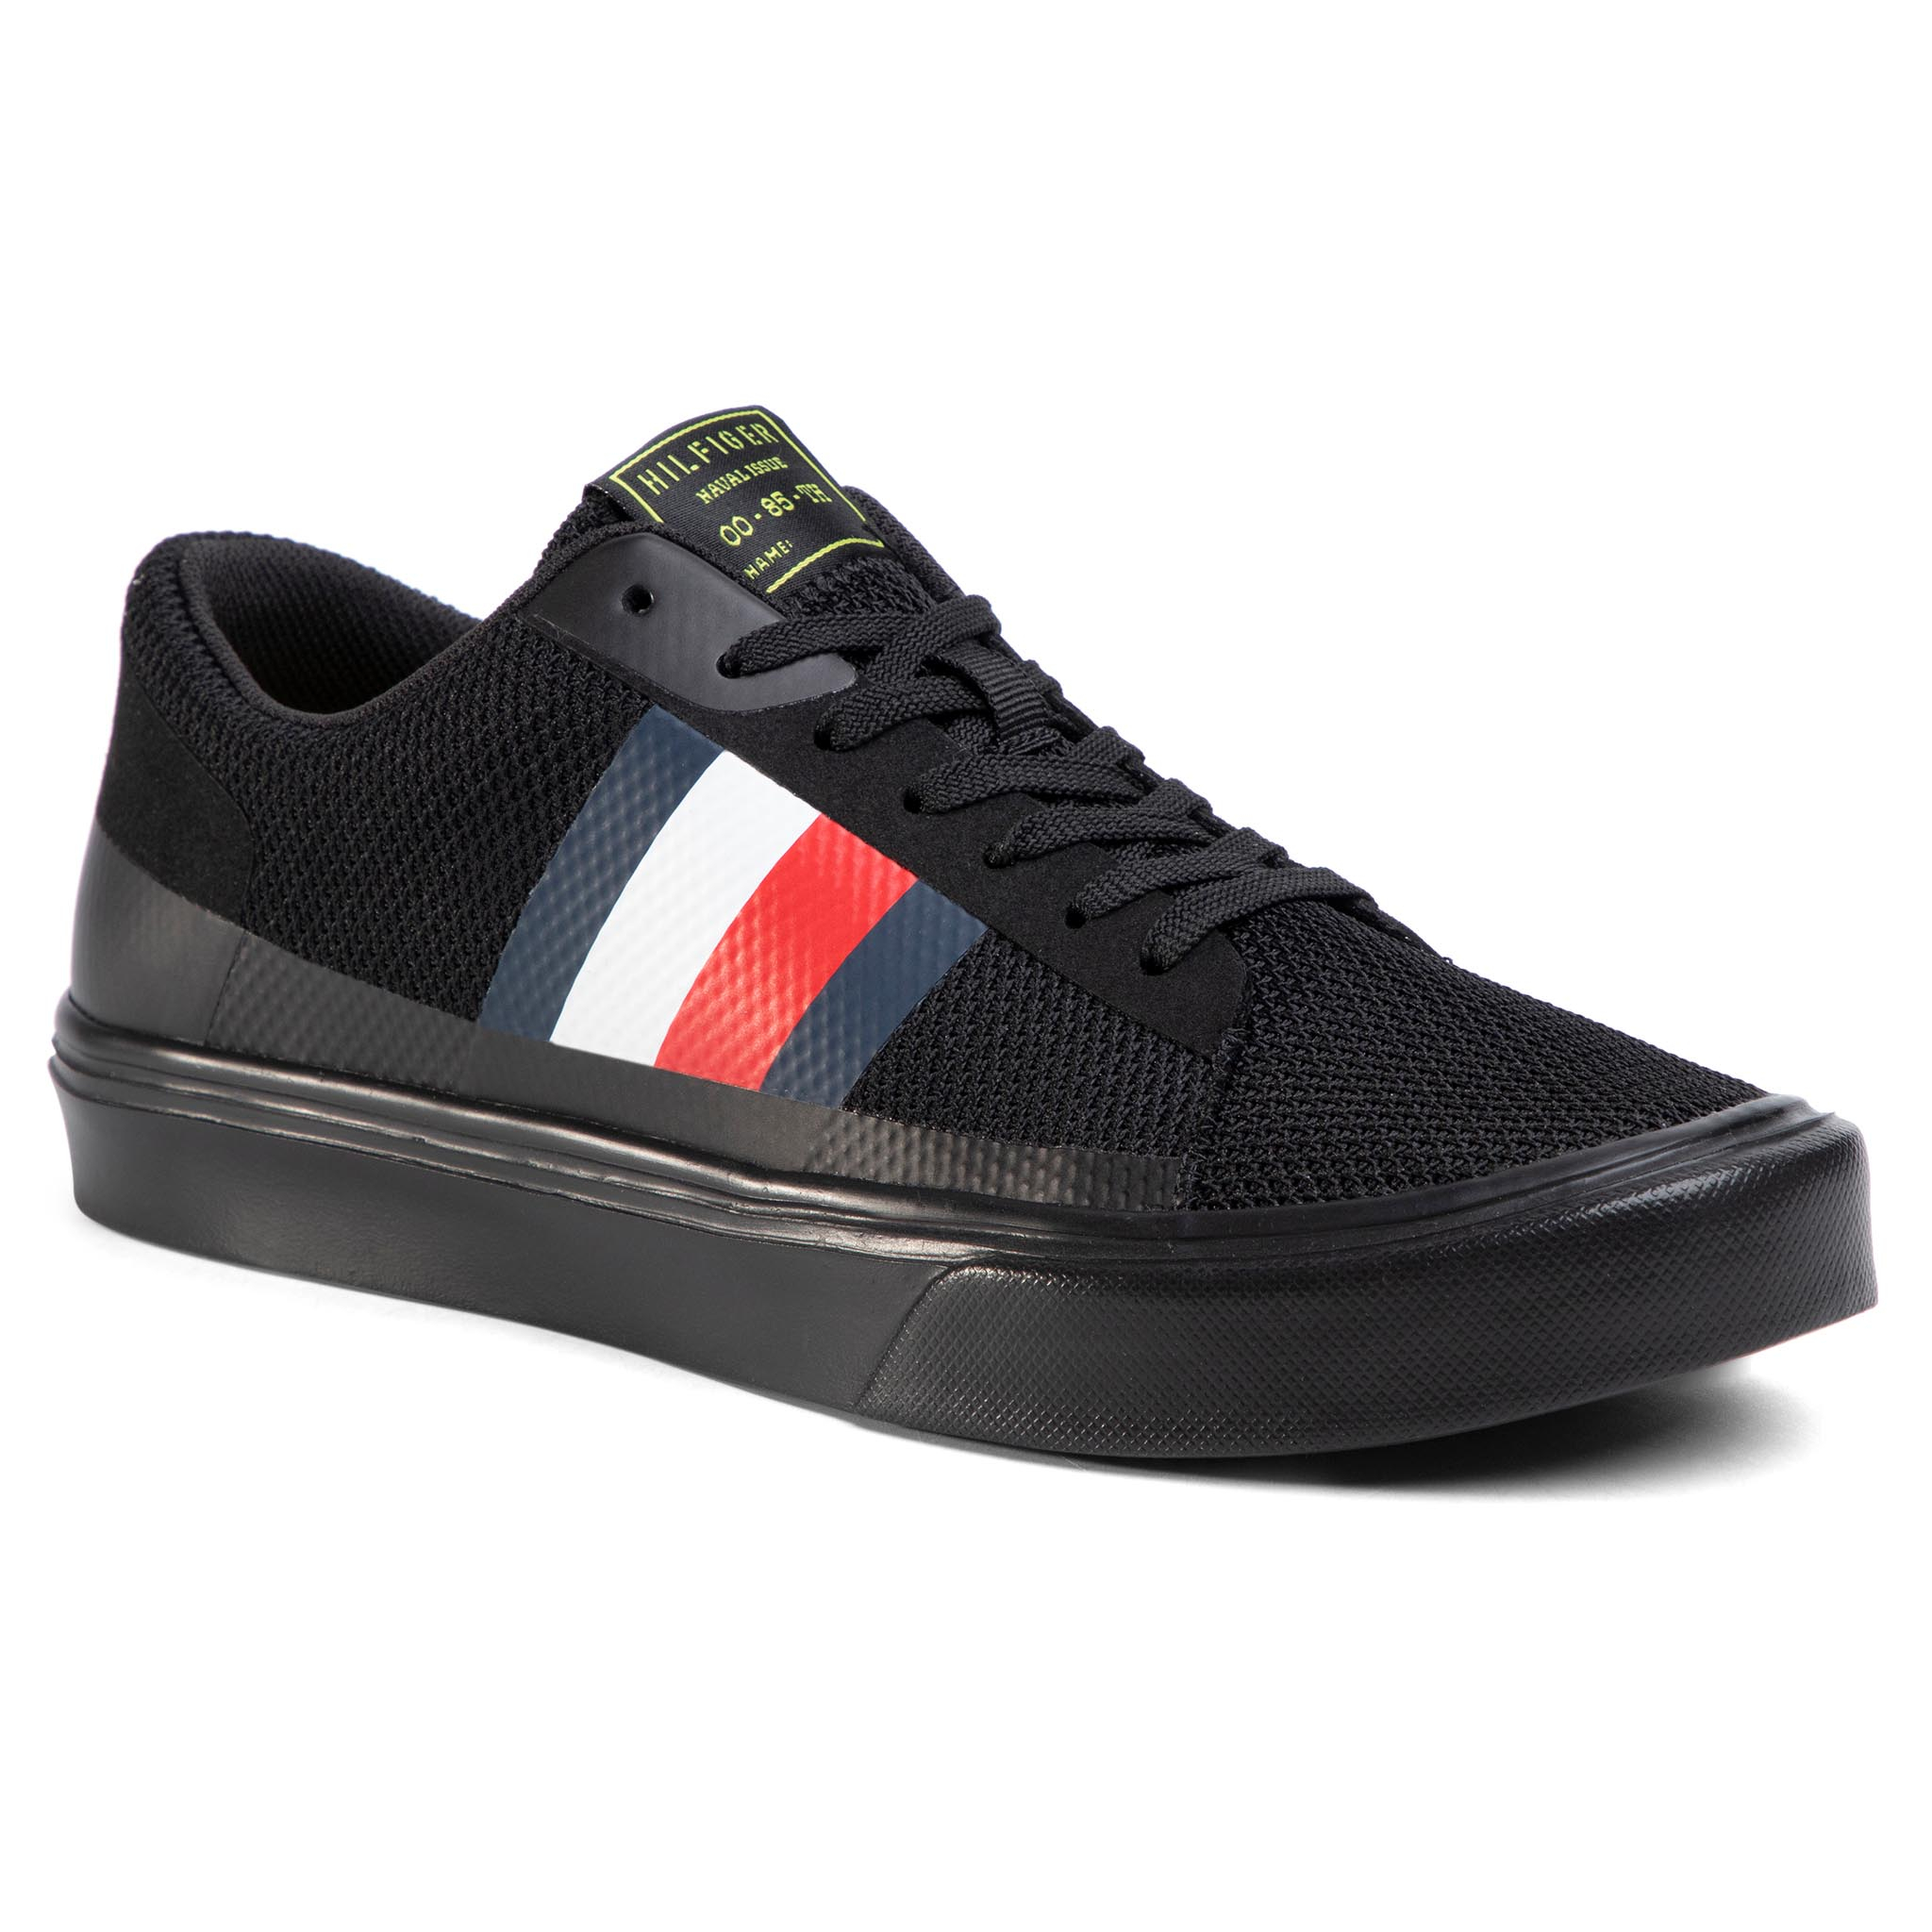 Sneakers TOMMY HILFIGER - Lightweight Stripes Knit Sneaker FM0FM02689B Black BDS